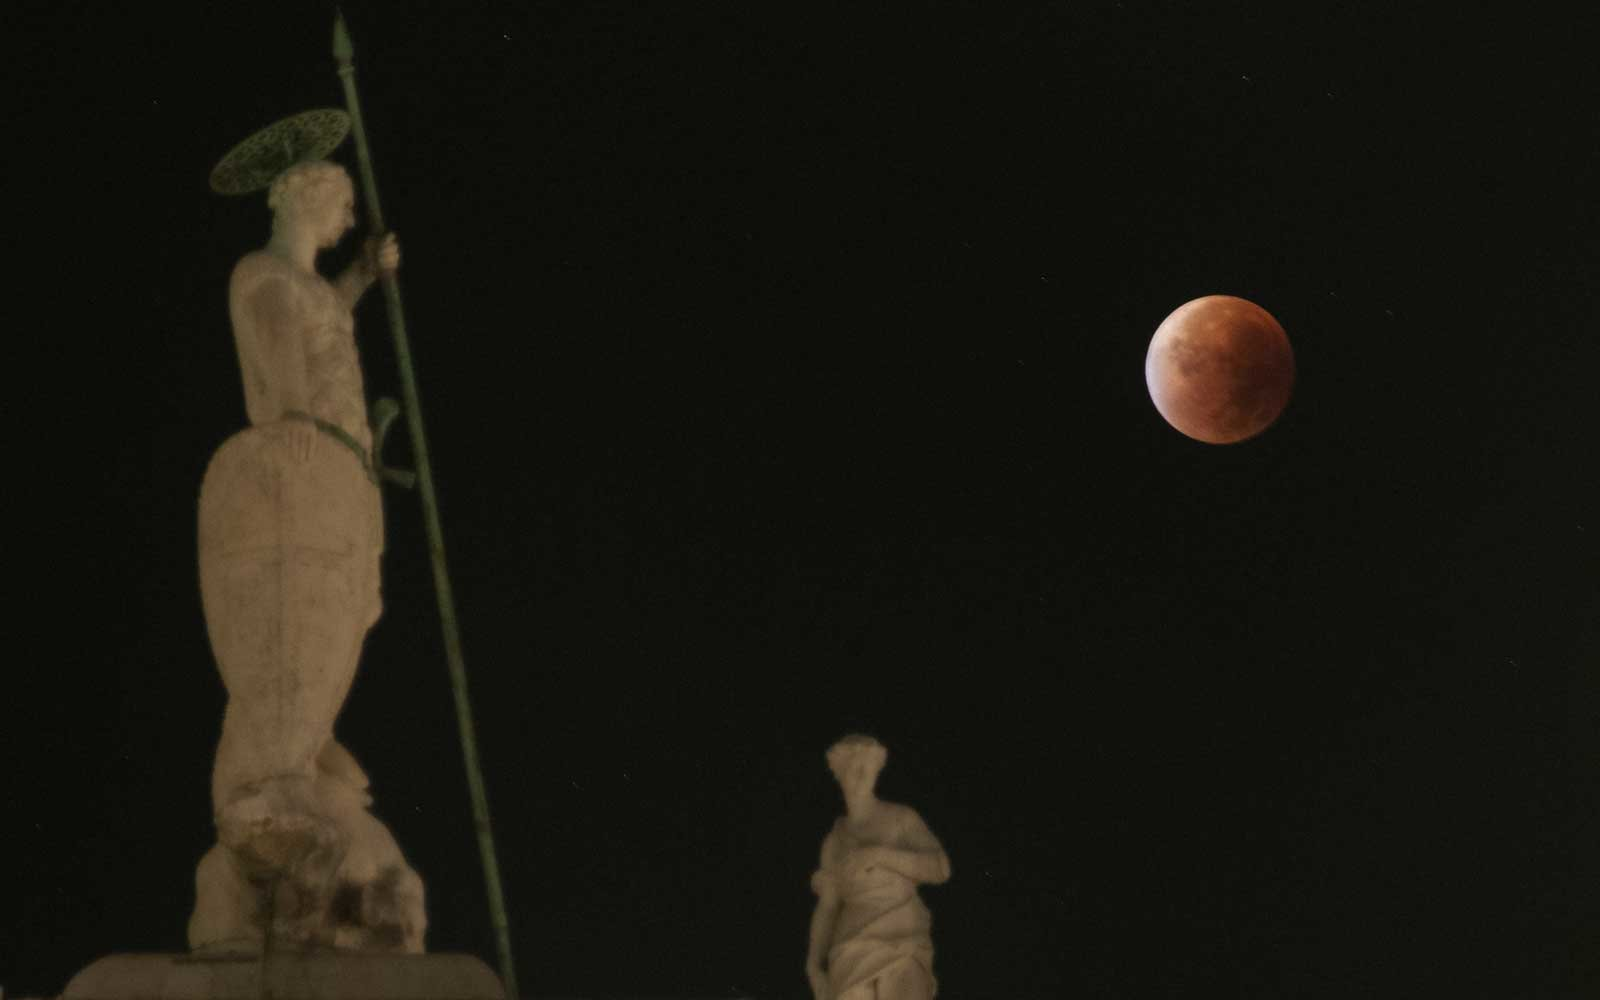 Will Dubai see a rare supermoon eclipse this month?